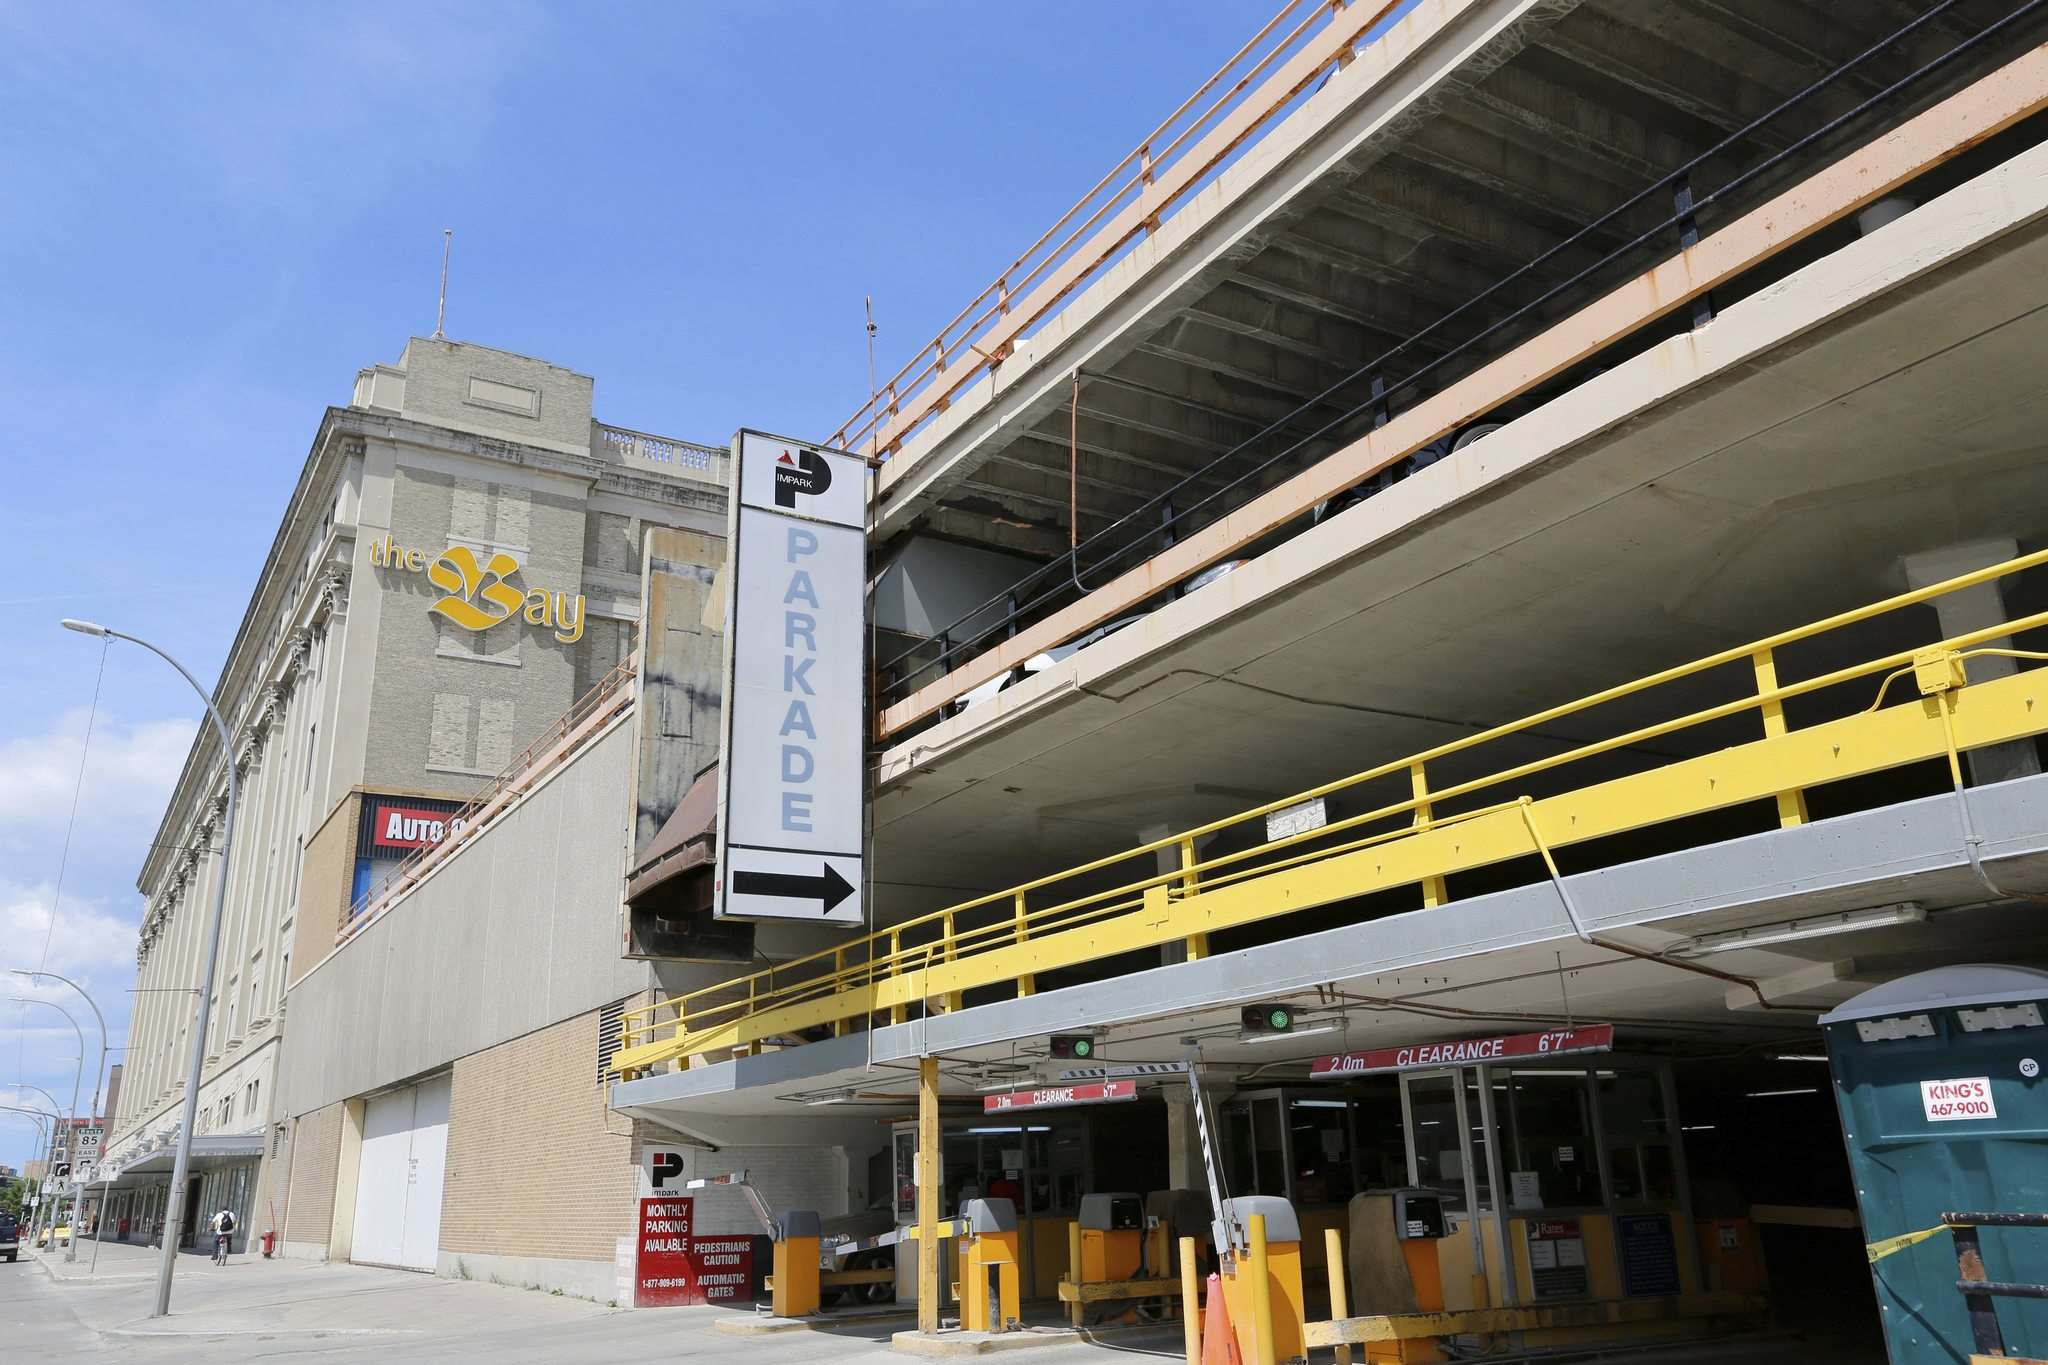 JUSTIN SAMANSKI-LANGILLE / WINNIPEG FREE PRESS</p><p>The Bay Parkade, as seen from Memorial Boulevard, has been hosting vehicles since it opened with two levels in 1954. By 1964, the demand for Downtown parking had seen it expanded to four levels.</p></p>